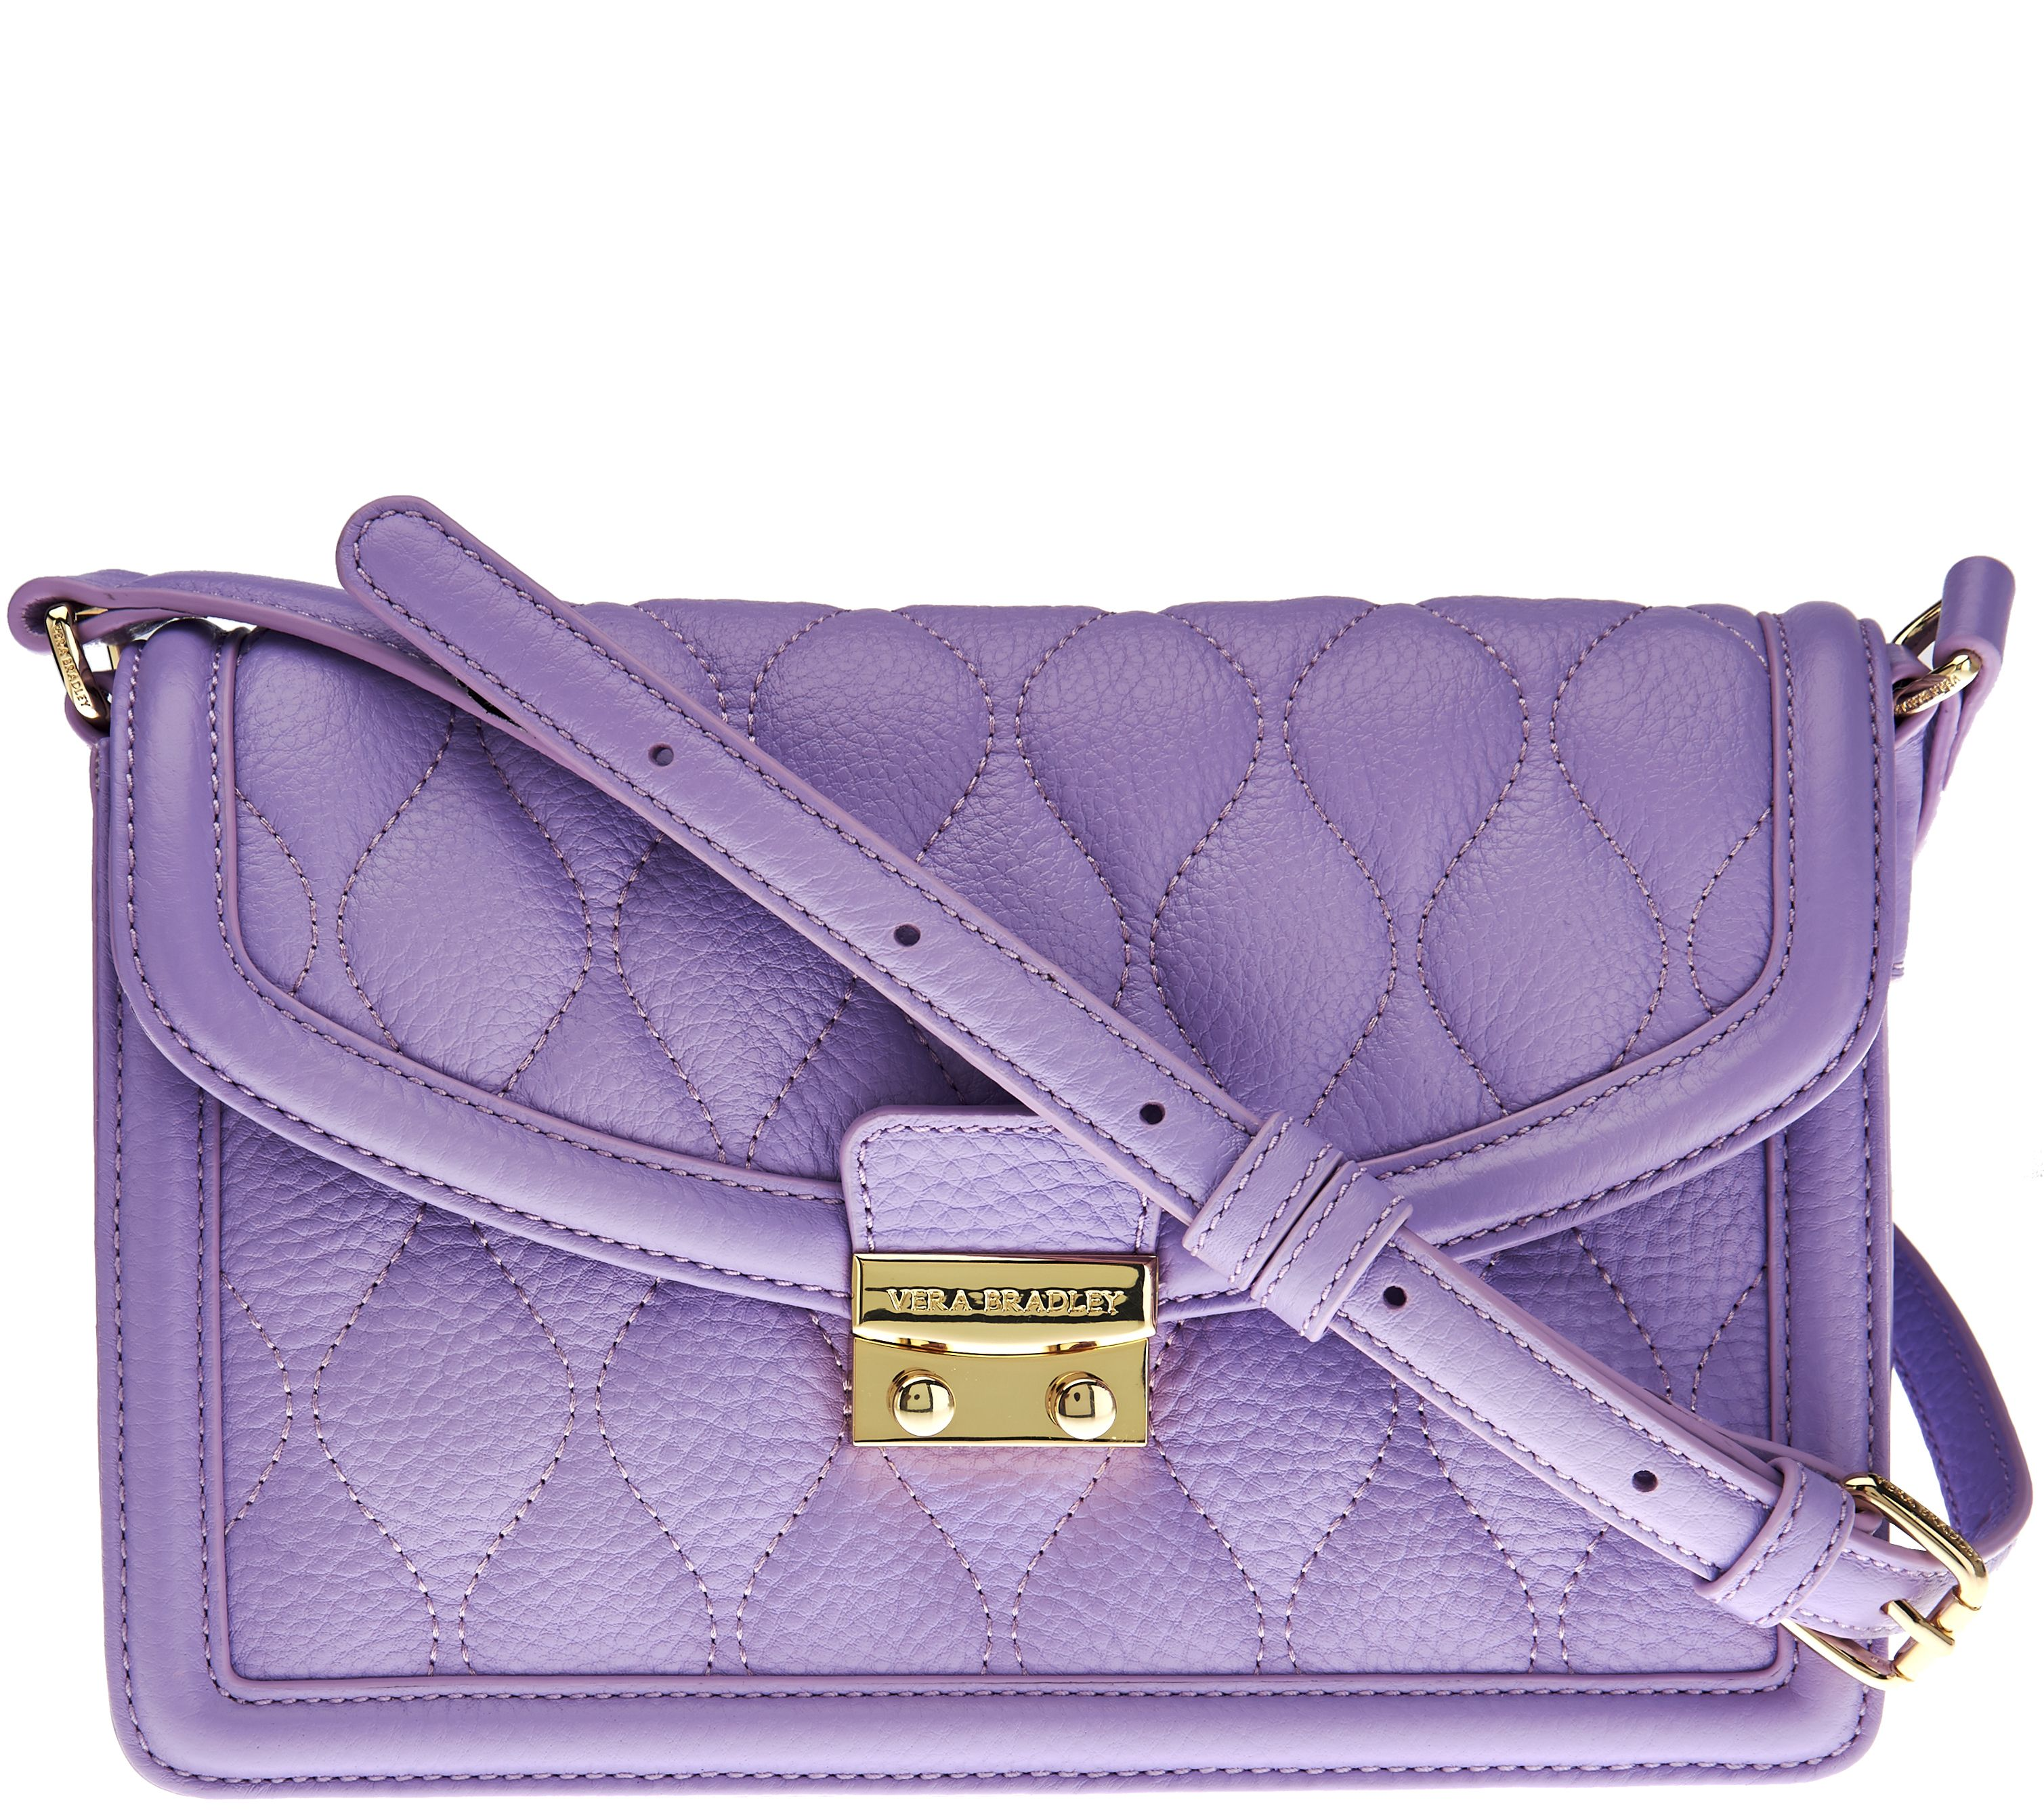 8ec008248636 Vera Bradley Quilted Leather Crossbody -Tess - Page 1 — QVC.com